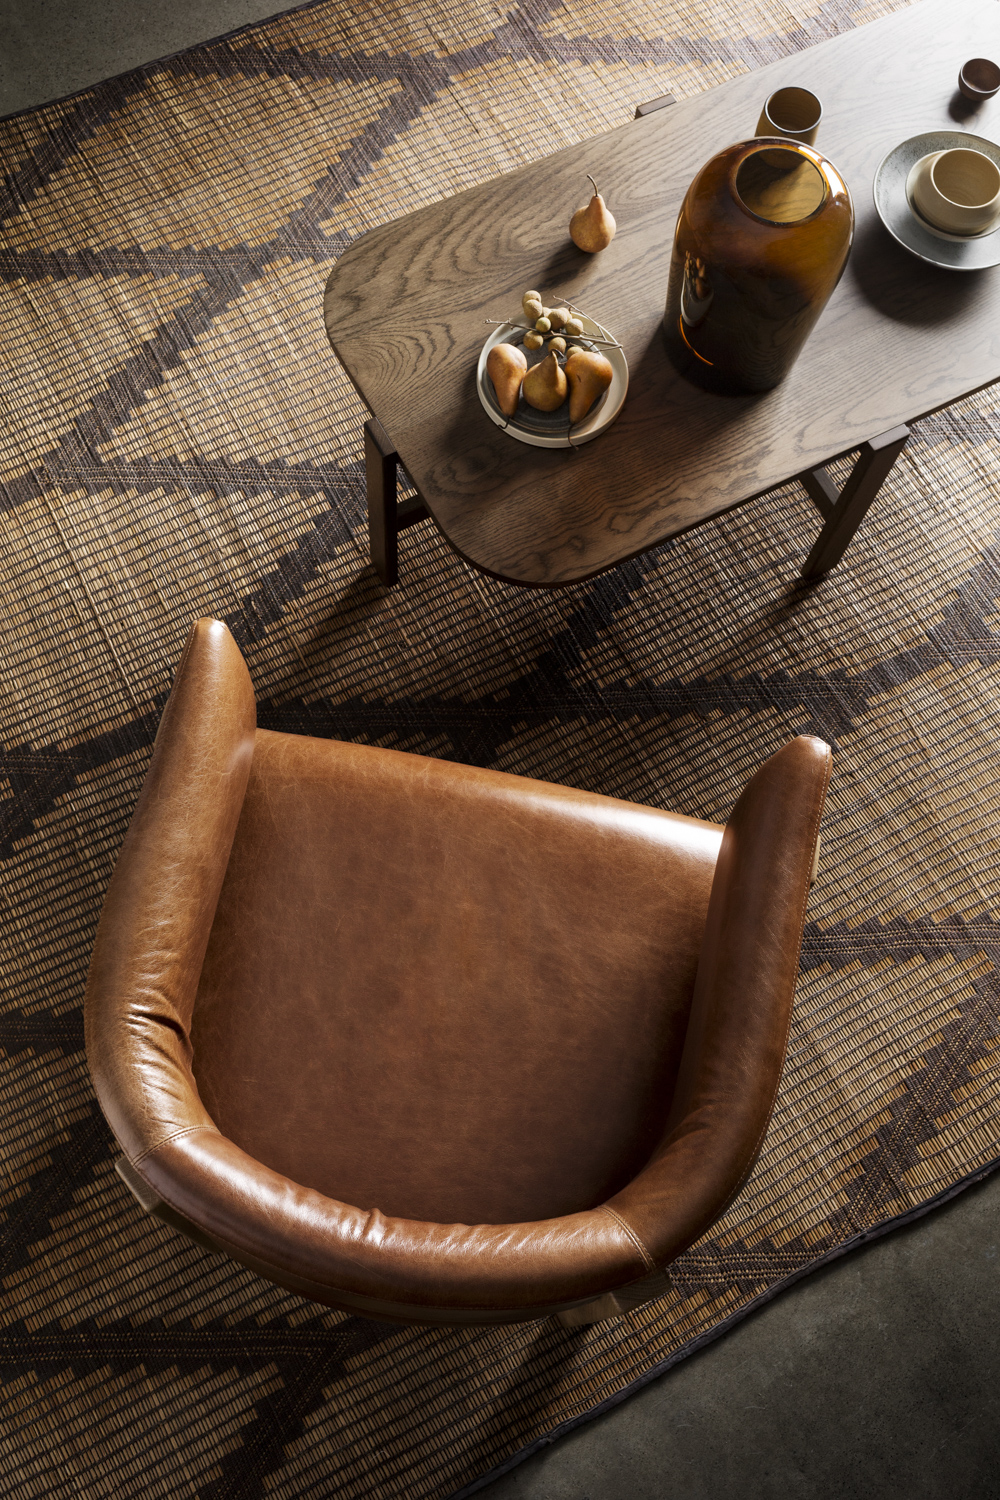 The Flo armchairs in a luxurious waxy leather.